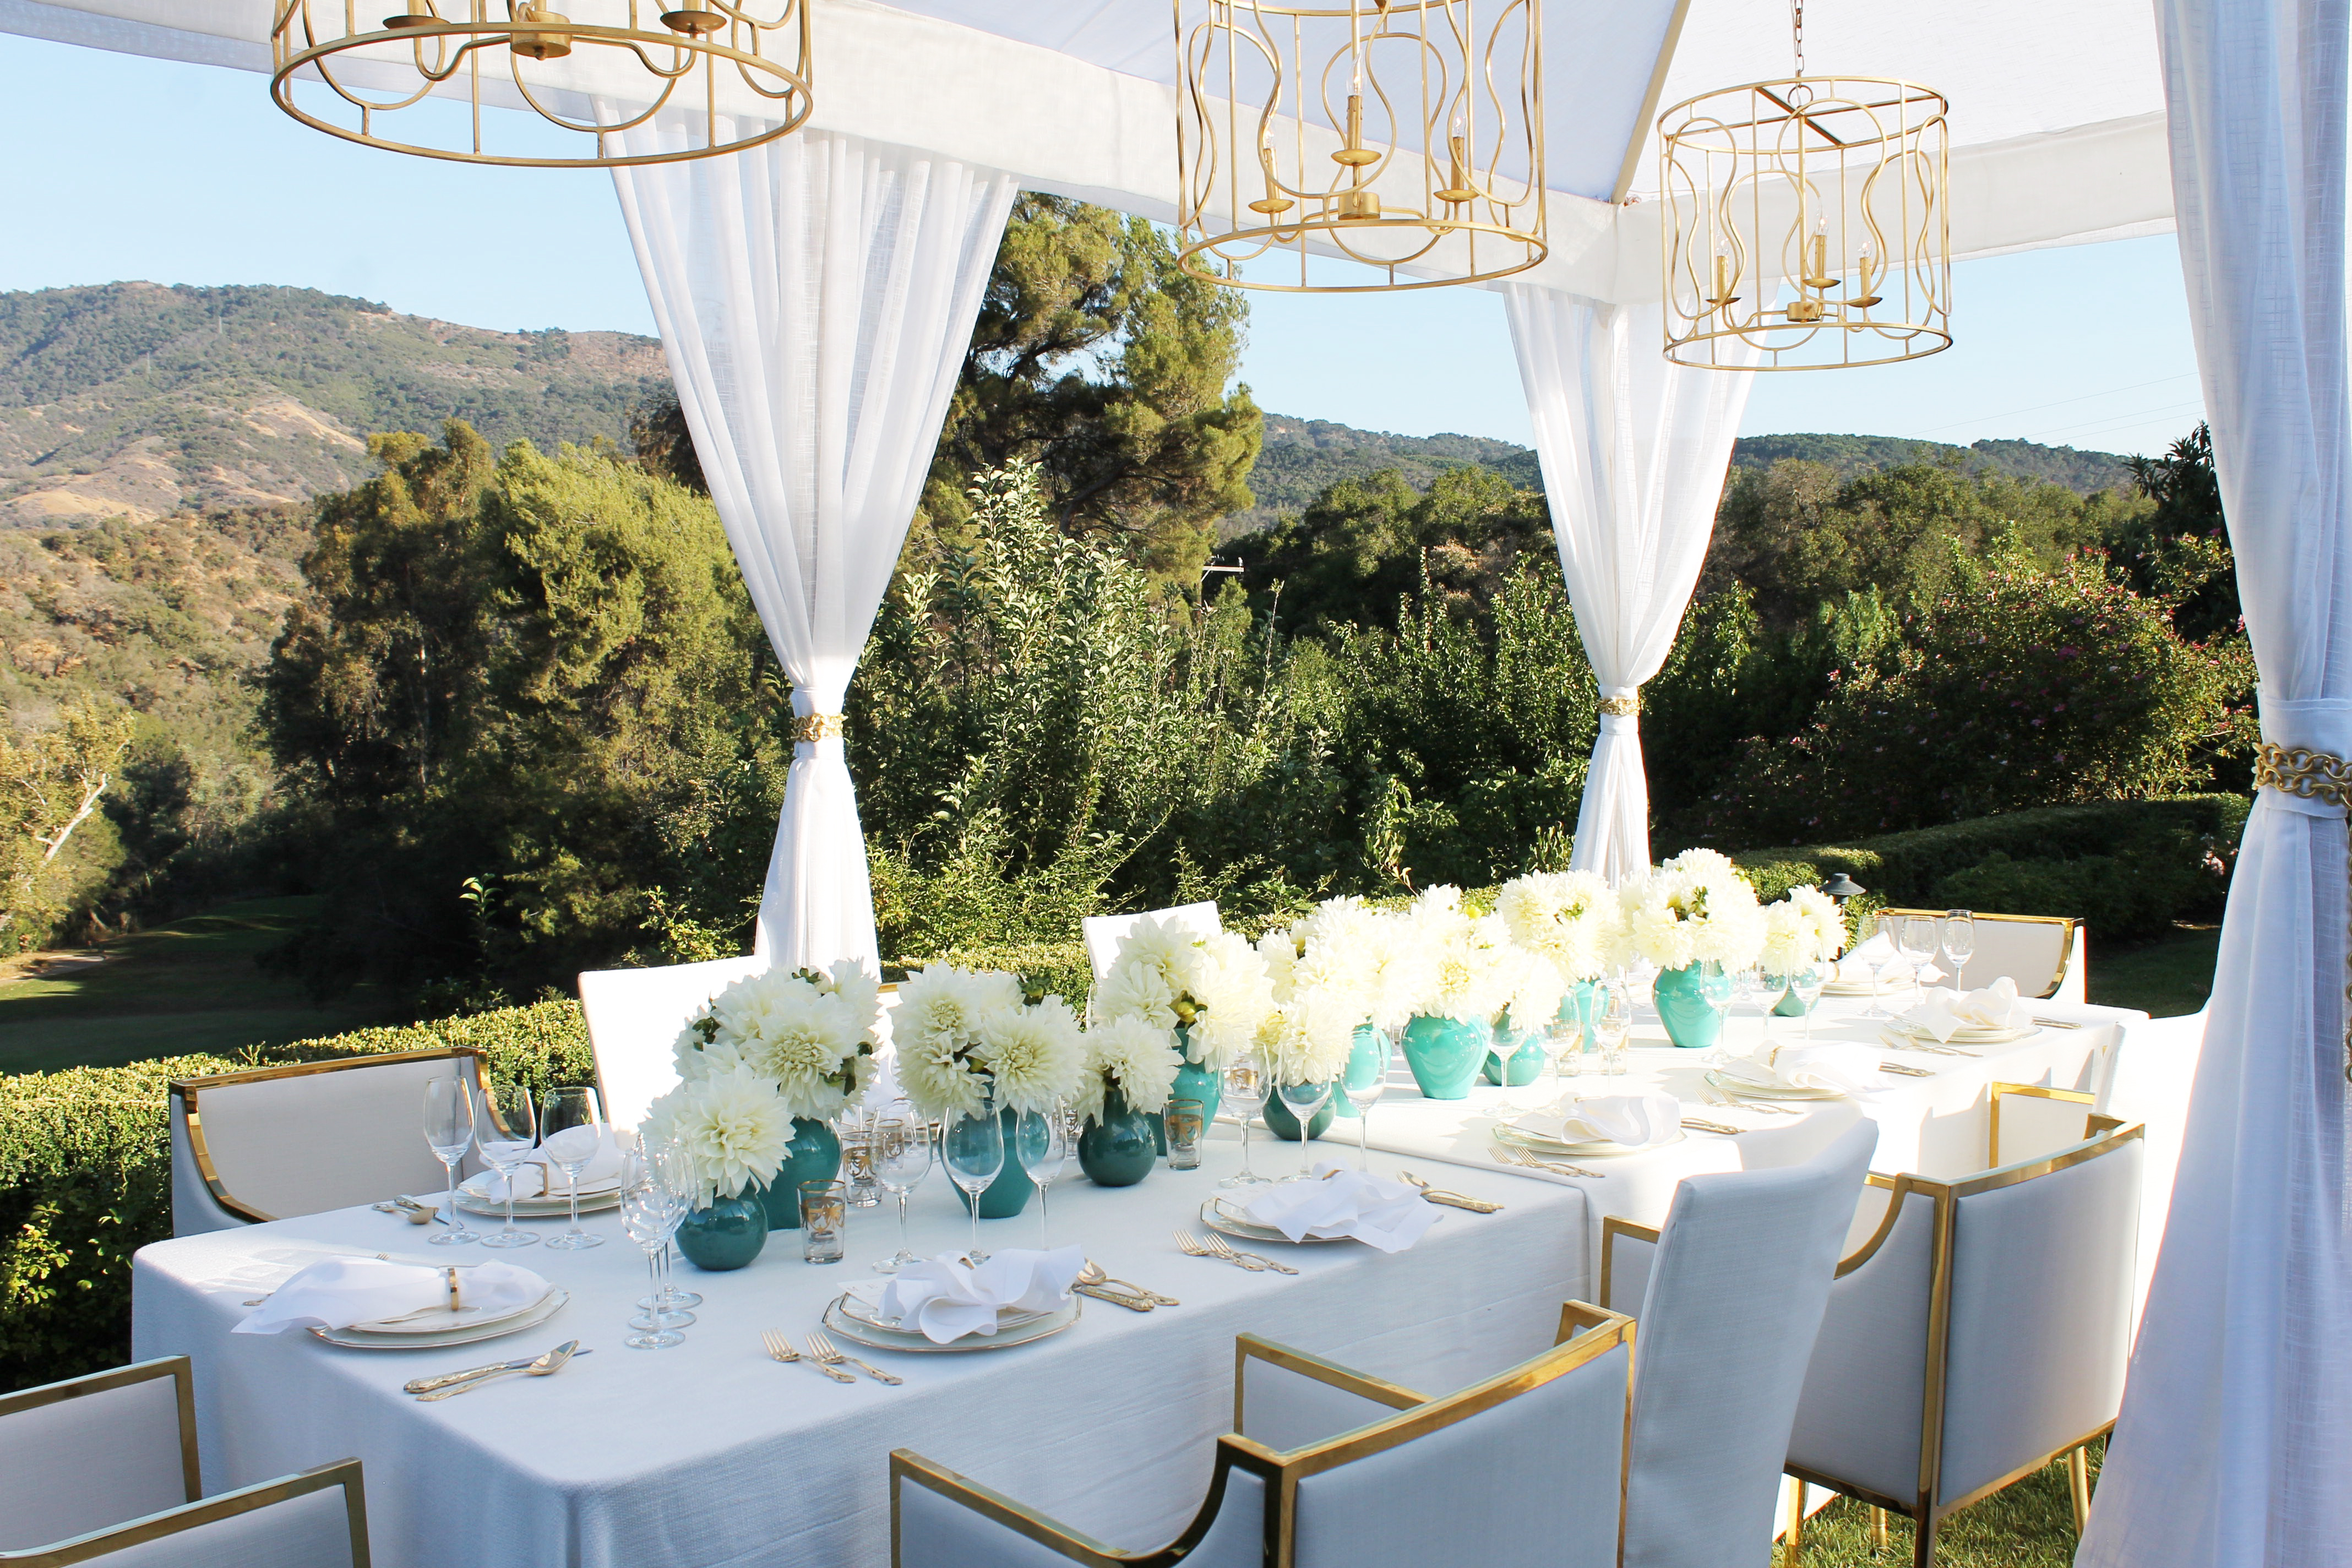 60th Birthday Weekend in Ojai - Kristin Banta Events